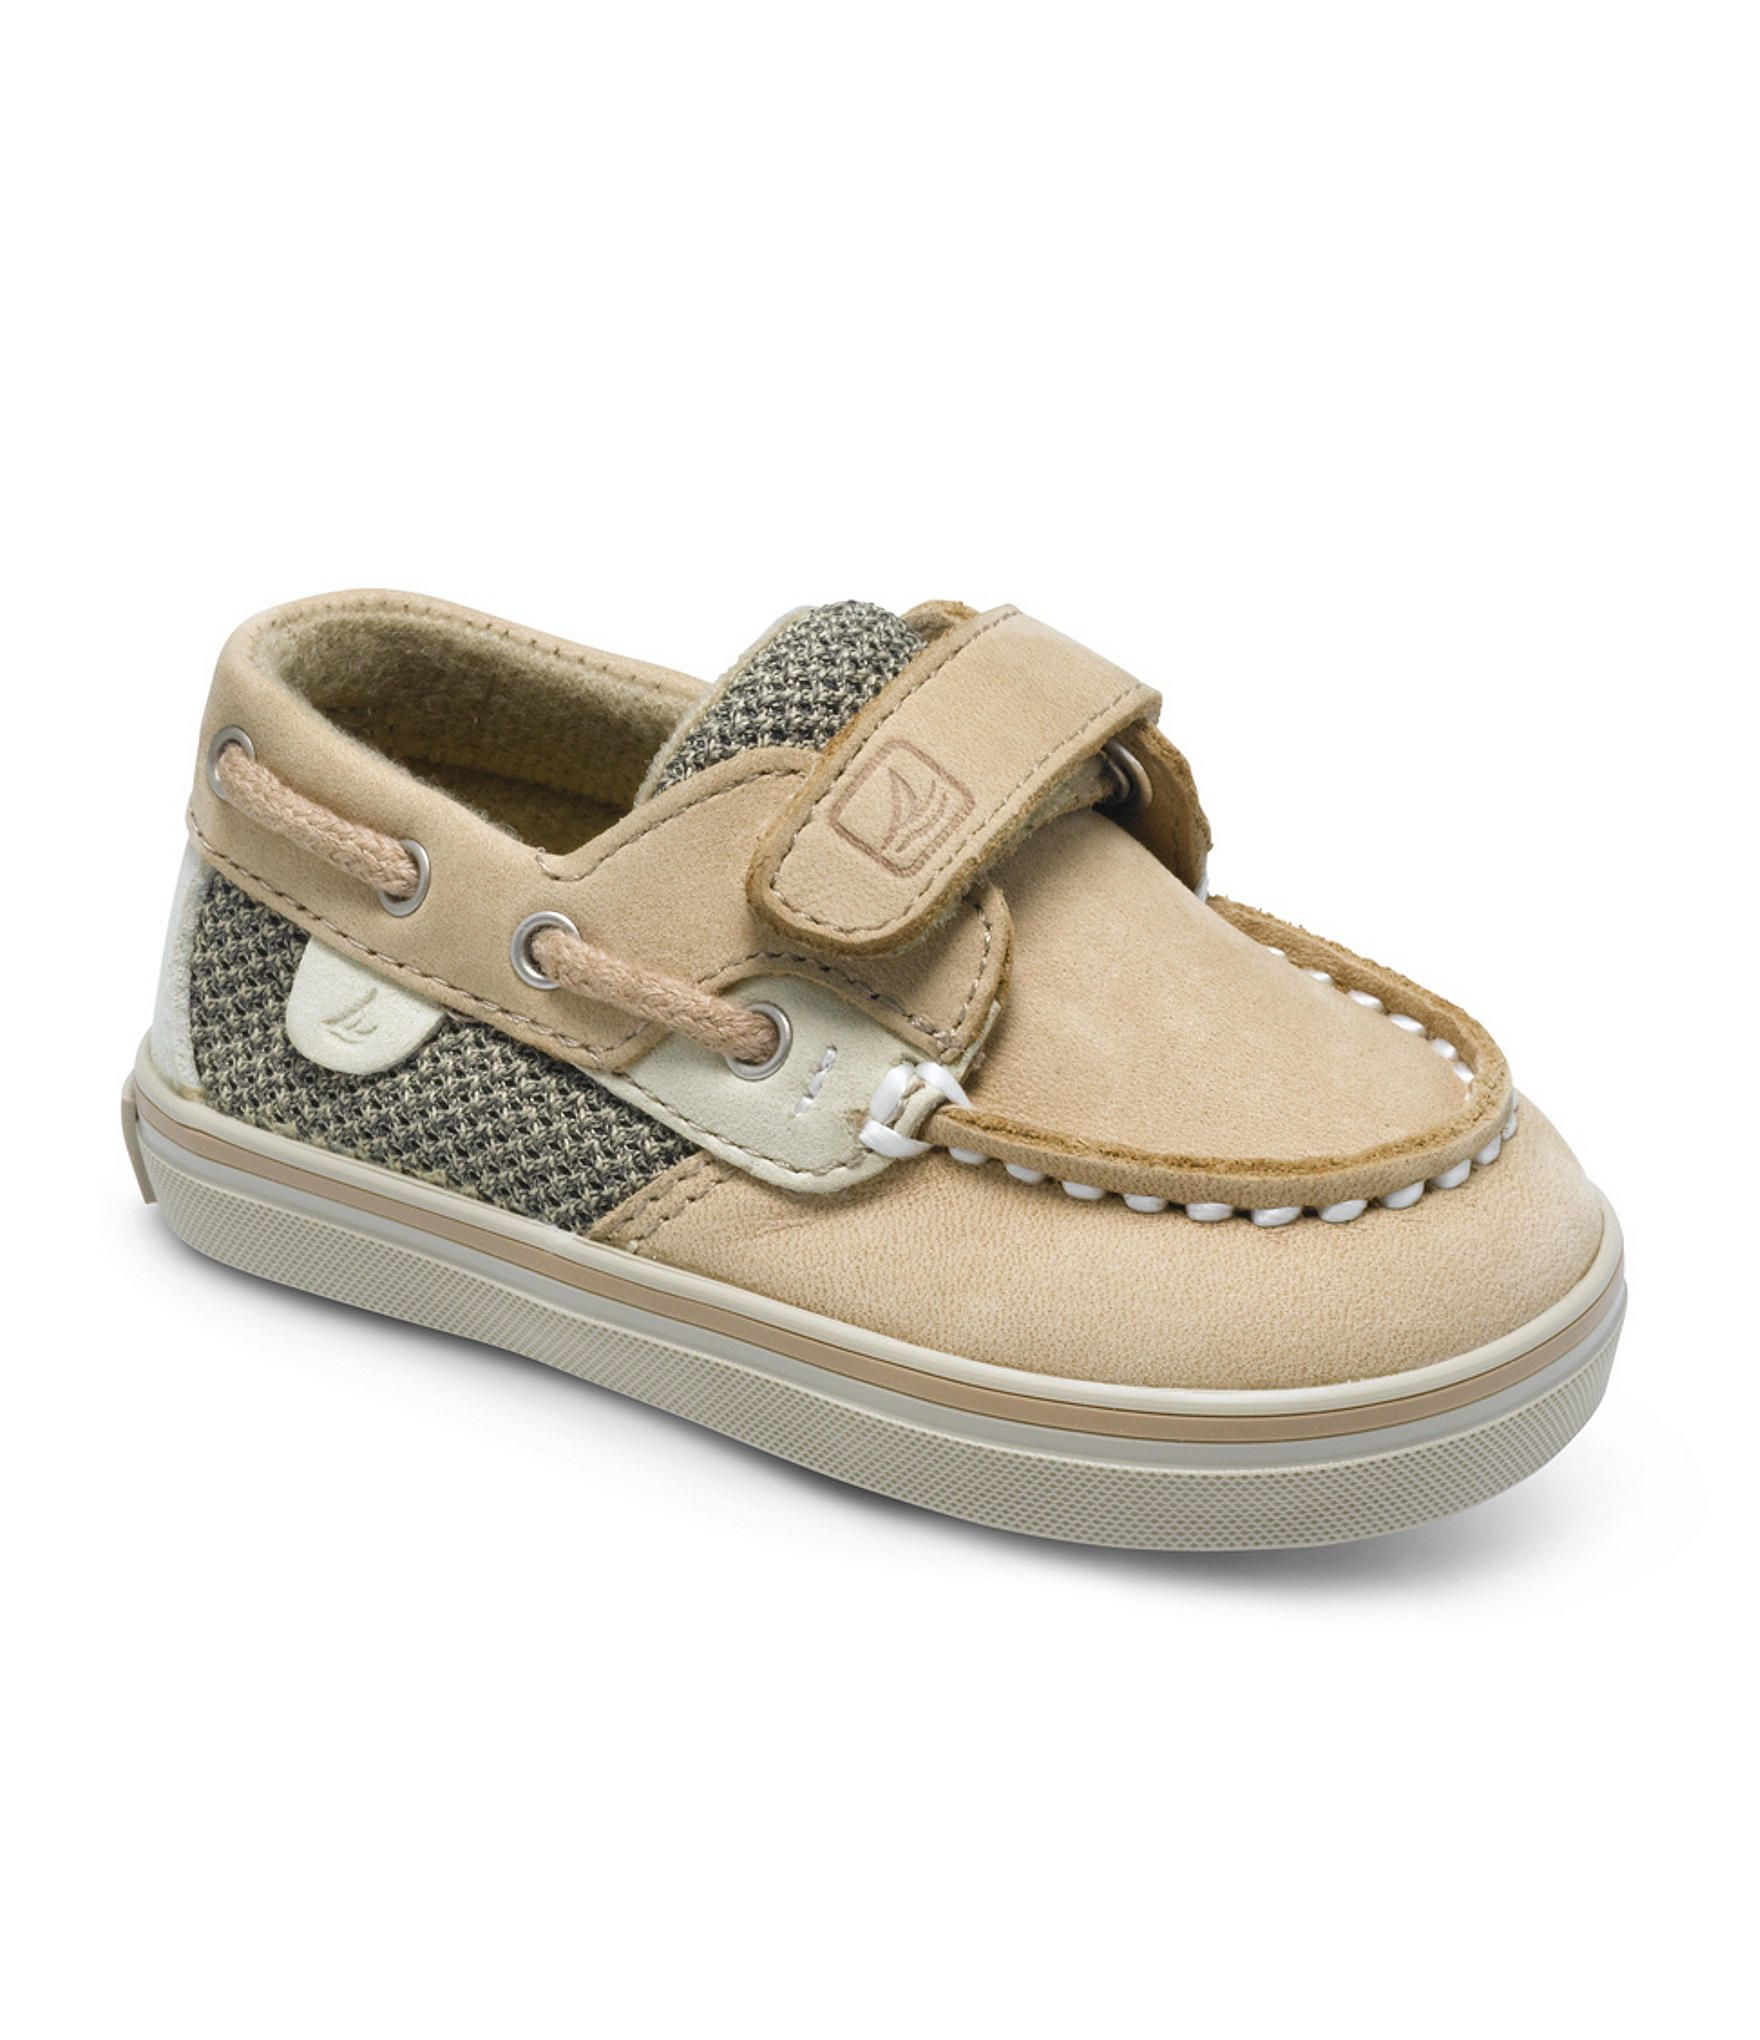 Sperry Top Sider Bluefish Infant Boys´ Boat Shoes